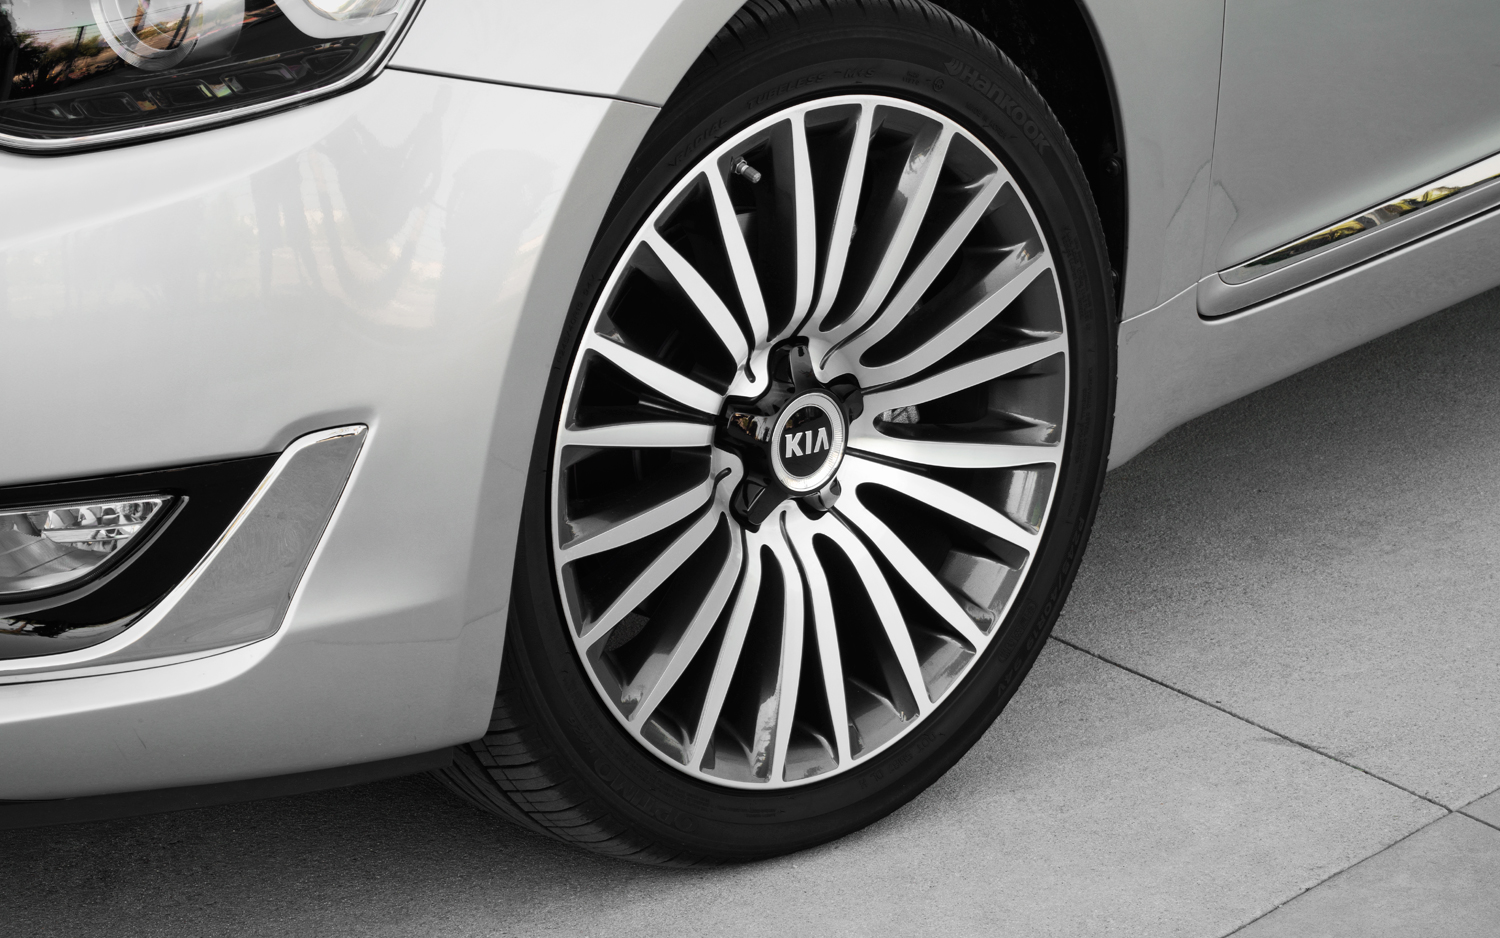 Kia Cadenza wheels #4